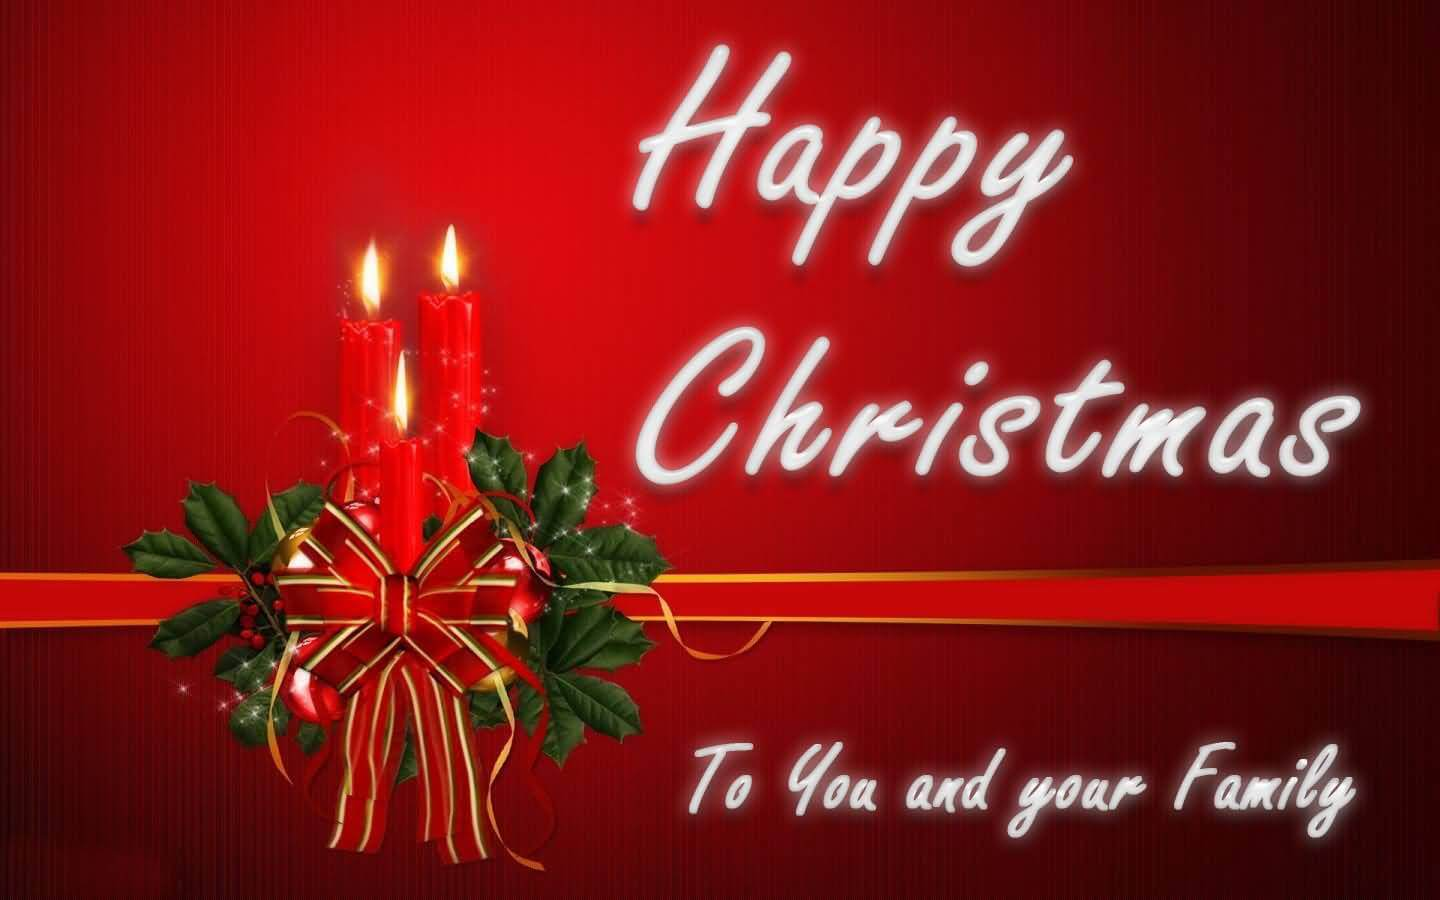 Wish You & Your Family Merry Christmas